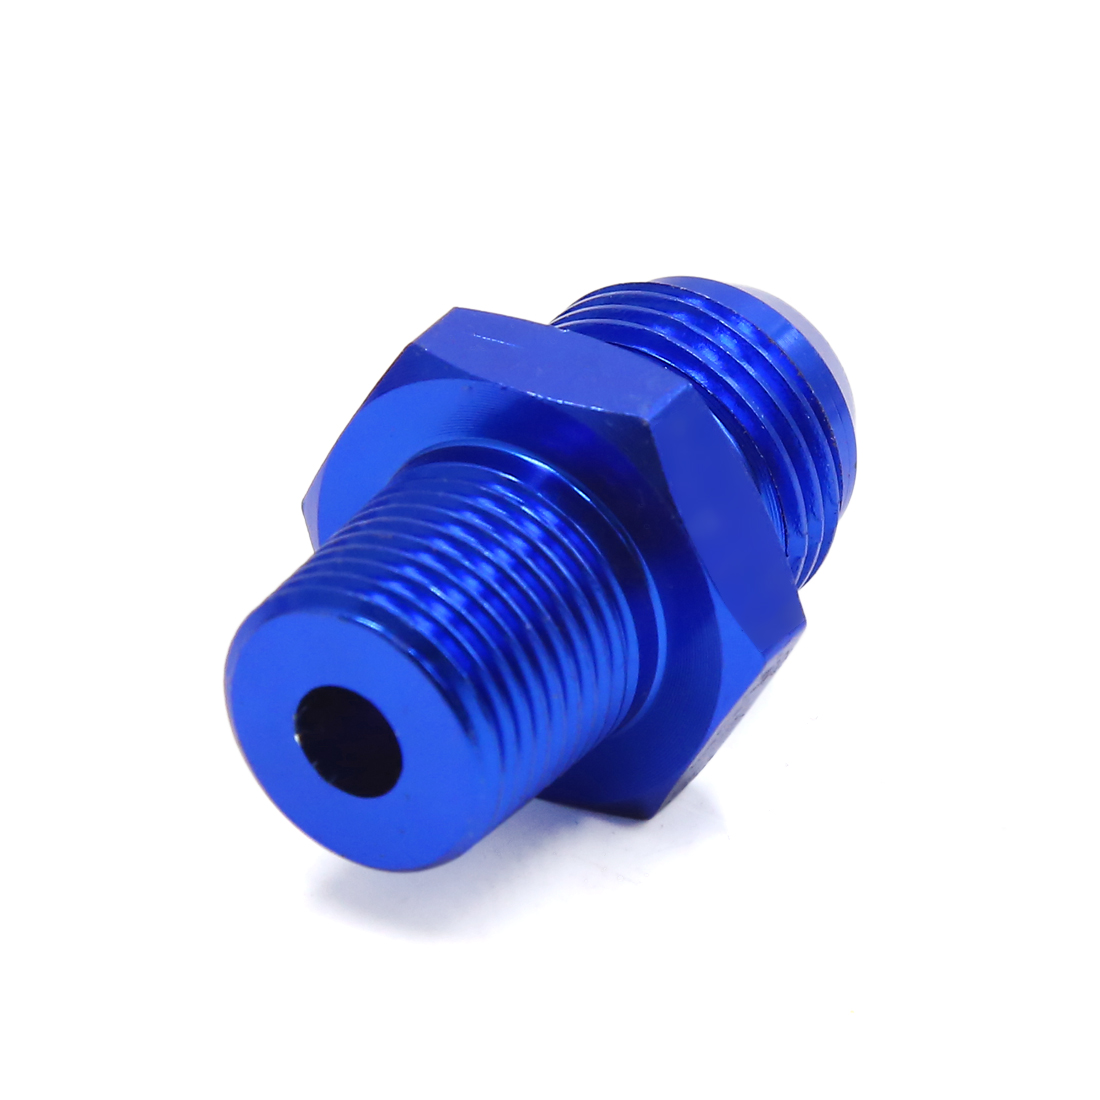 Blue Car AN8 3/8NPT Gas Oil Fuel Hose Line End Fitting Adapter Hose Connector - image 2 of 4